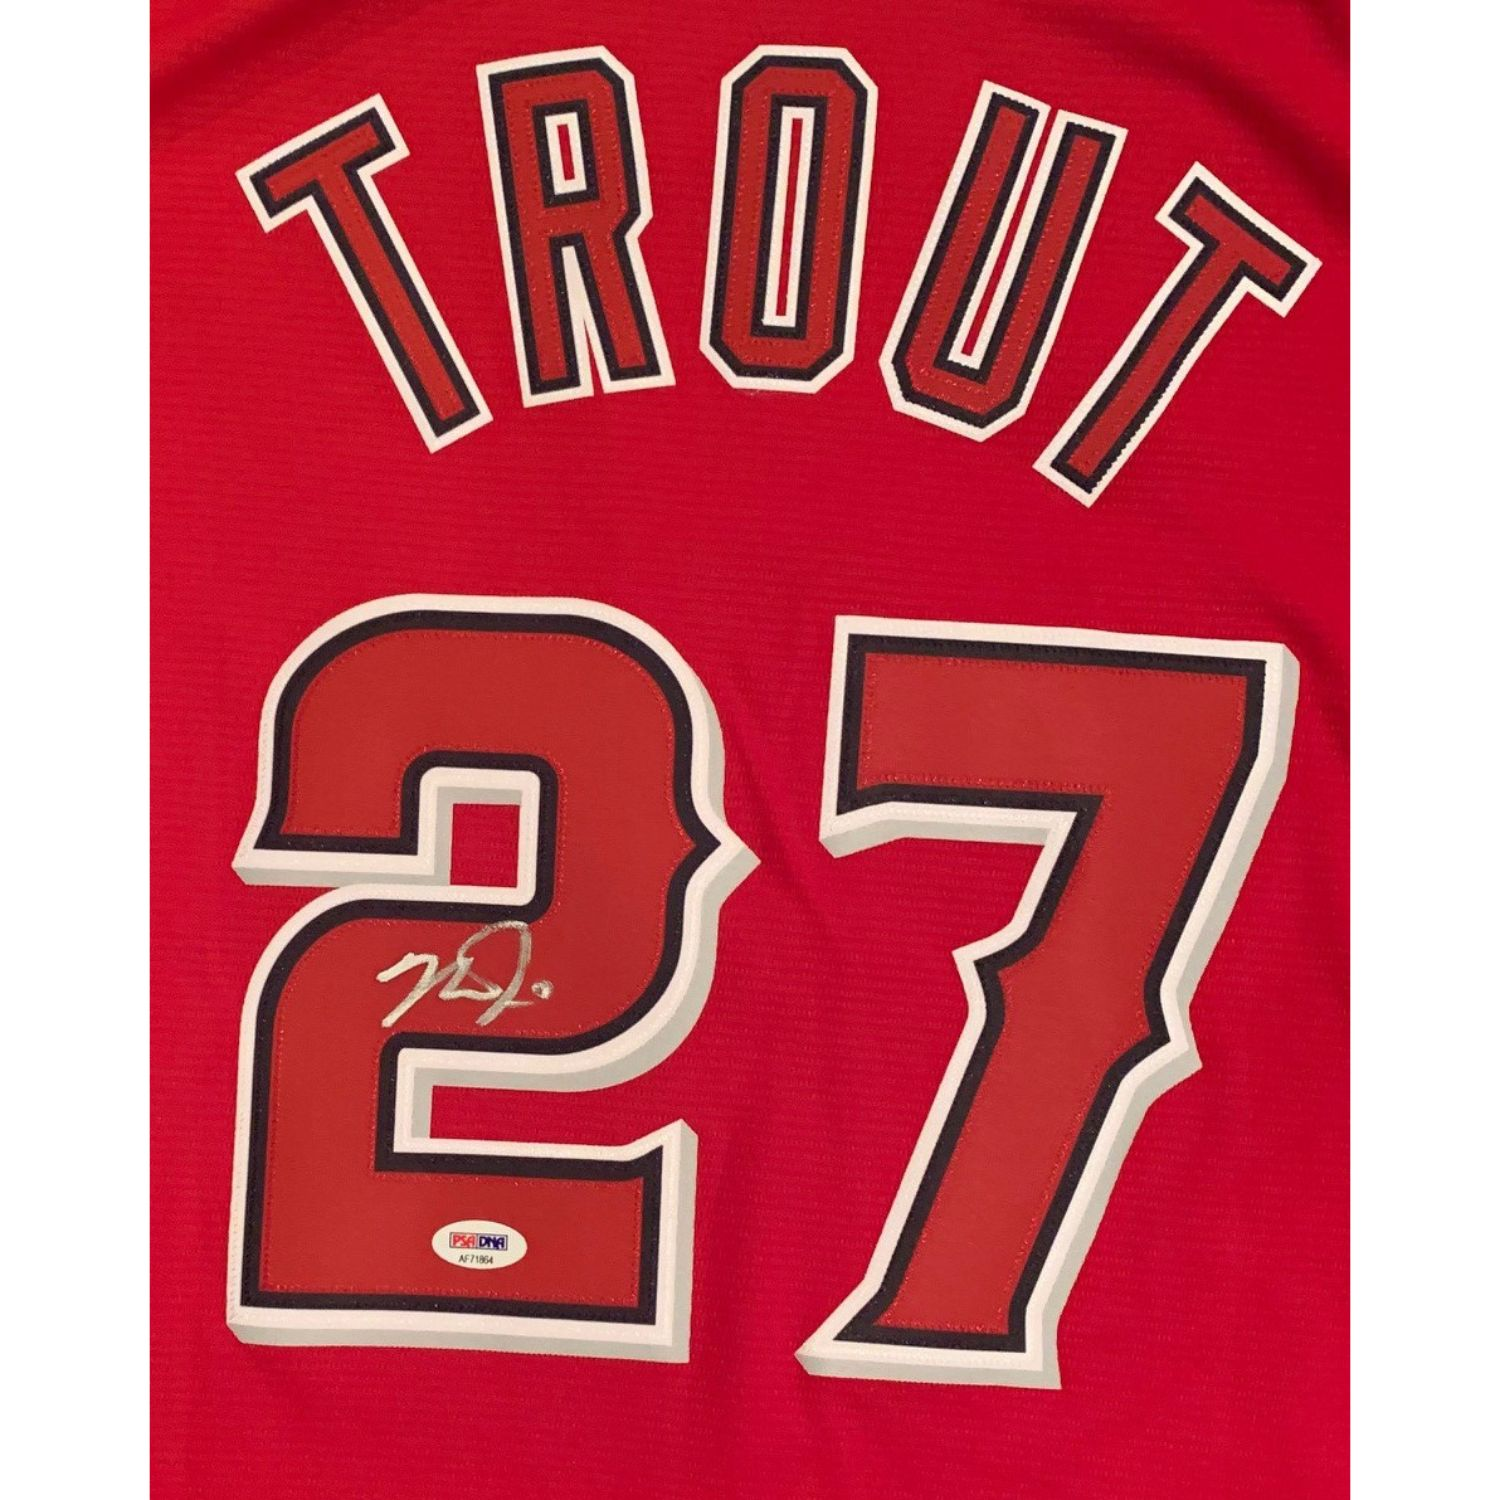 Mike Trout Autographed Los Angeles Angels Signed Baseball Jersey PSA DNA COA 4 Imagine a baseball player that had all the tools necessary to be one of the greatest players of all-time. A player that loved playing the game as much as fans loved watching him play. That player is Mike Trout. Superstar MVP of the Los Angeles Angels. Trout has won Rookie of the Year and 2 AL MVP awards. One of the most popular players in all of baseball. Trout has autographed this officially licensed Angels Majestic XL jersey, name and numbers sewn on. Autograph is authenticated by PSA/DNA, the world's leading authenticator of sports autographs. Comes with their unique sticker # fixed to the item and verified on their website. Also, comes with their certificate of authenticity with same matching #. Receive the exact item shown.